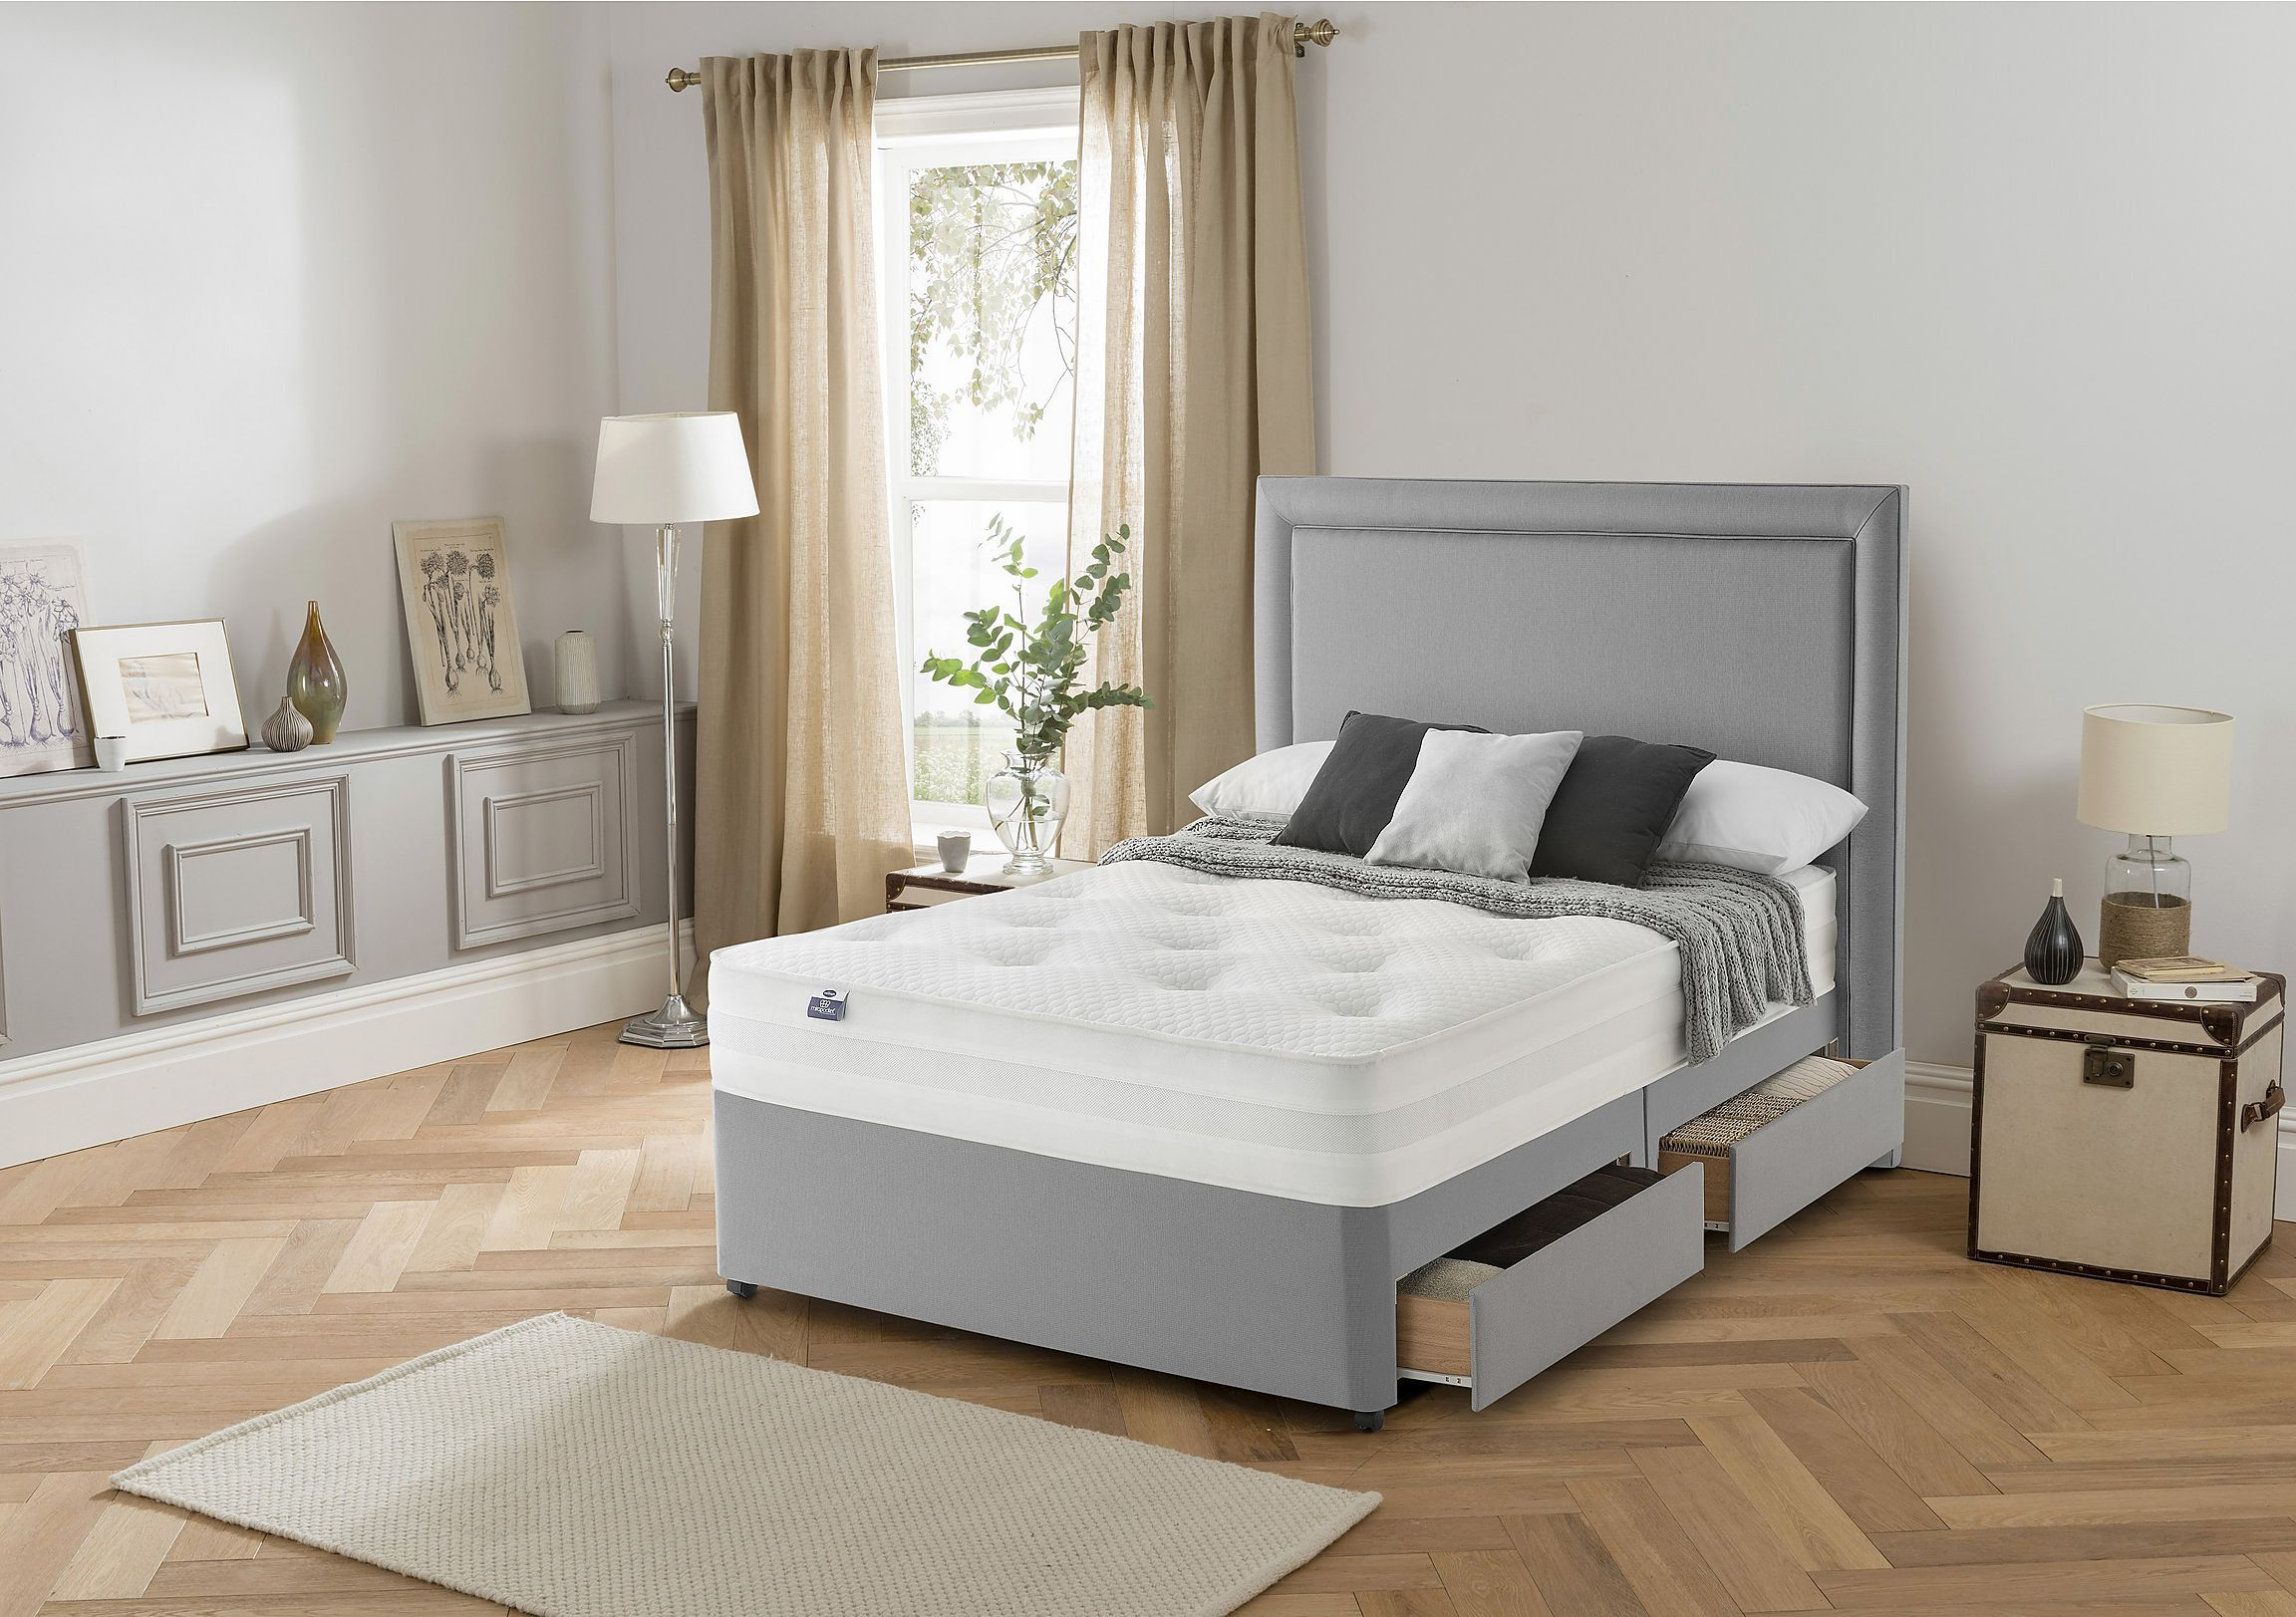 sleep solstice place my queen bed finland set memory products foam and sets mattress furniture